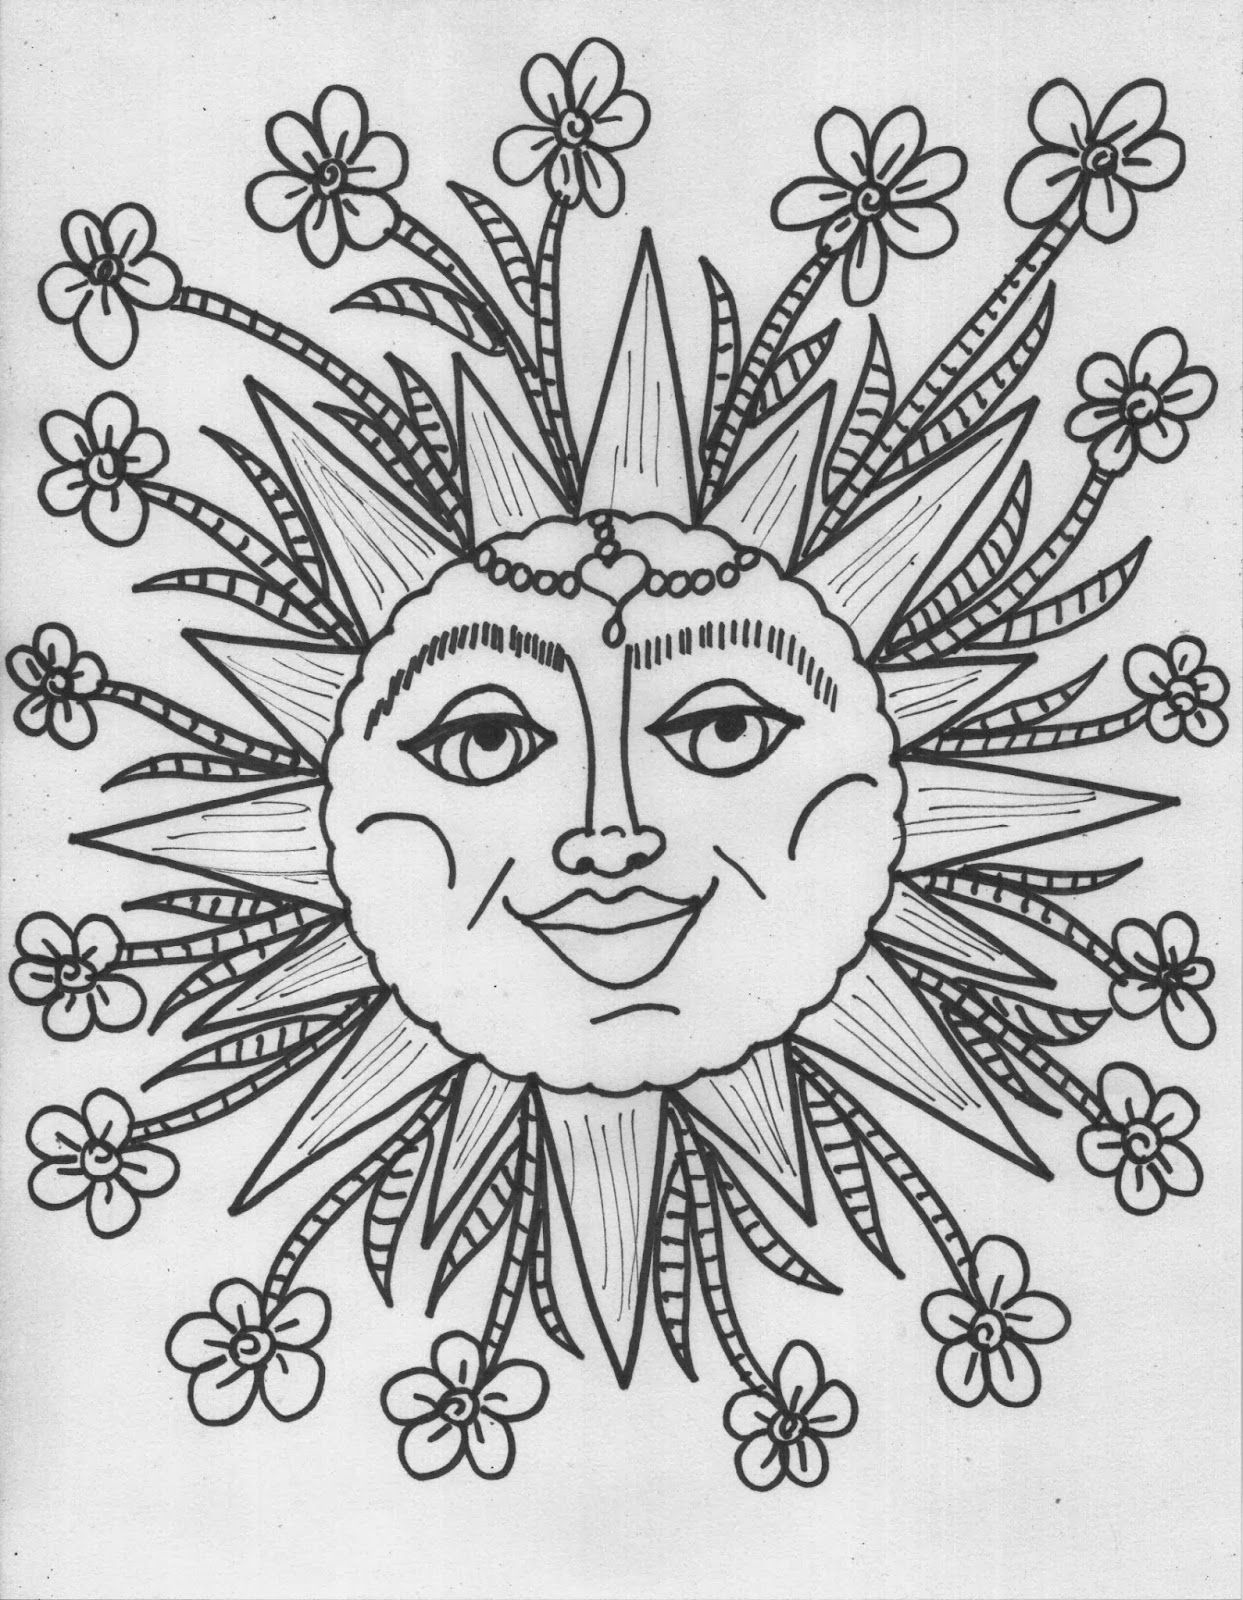 Hippie Coloring Pages Free Coloring Pages Download | Xsibe stoner ...